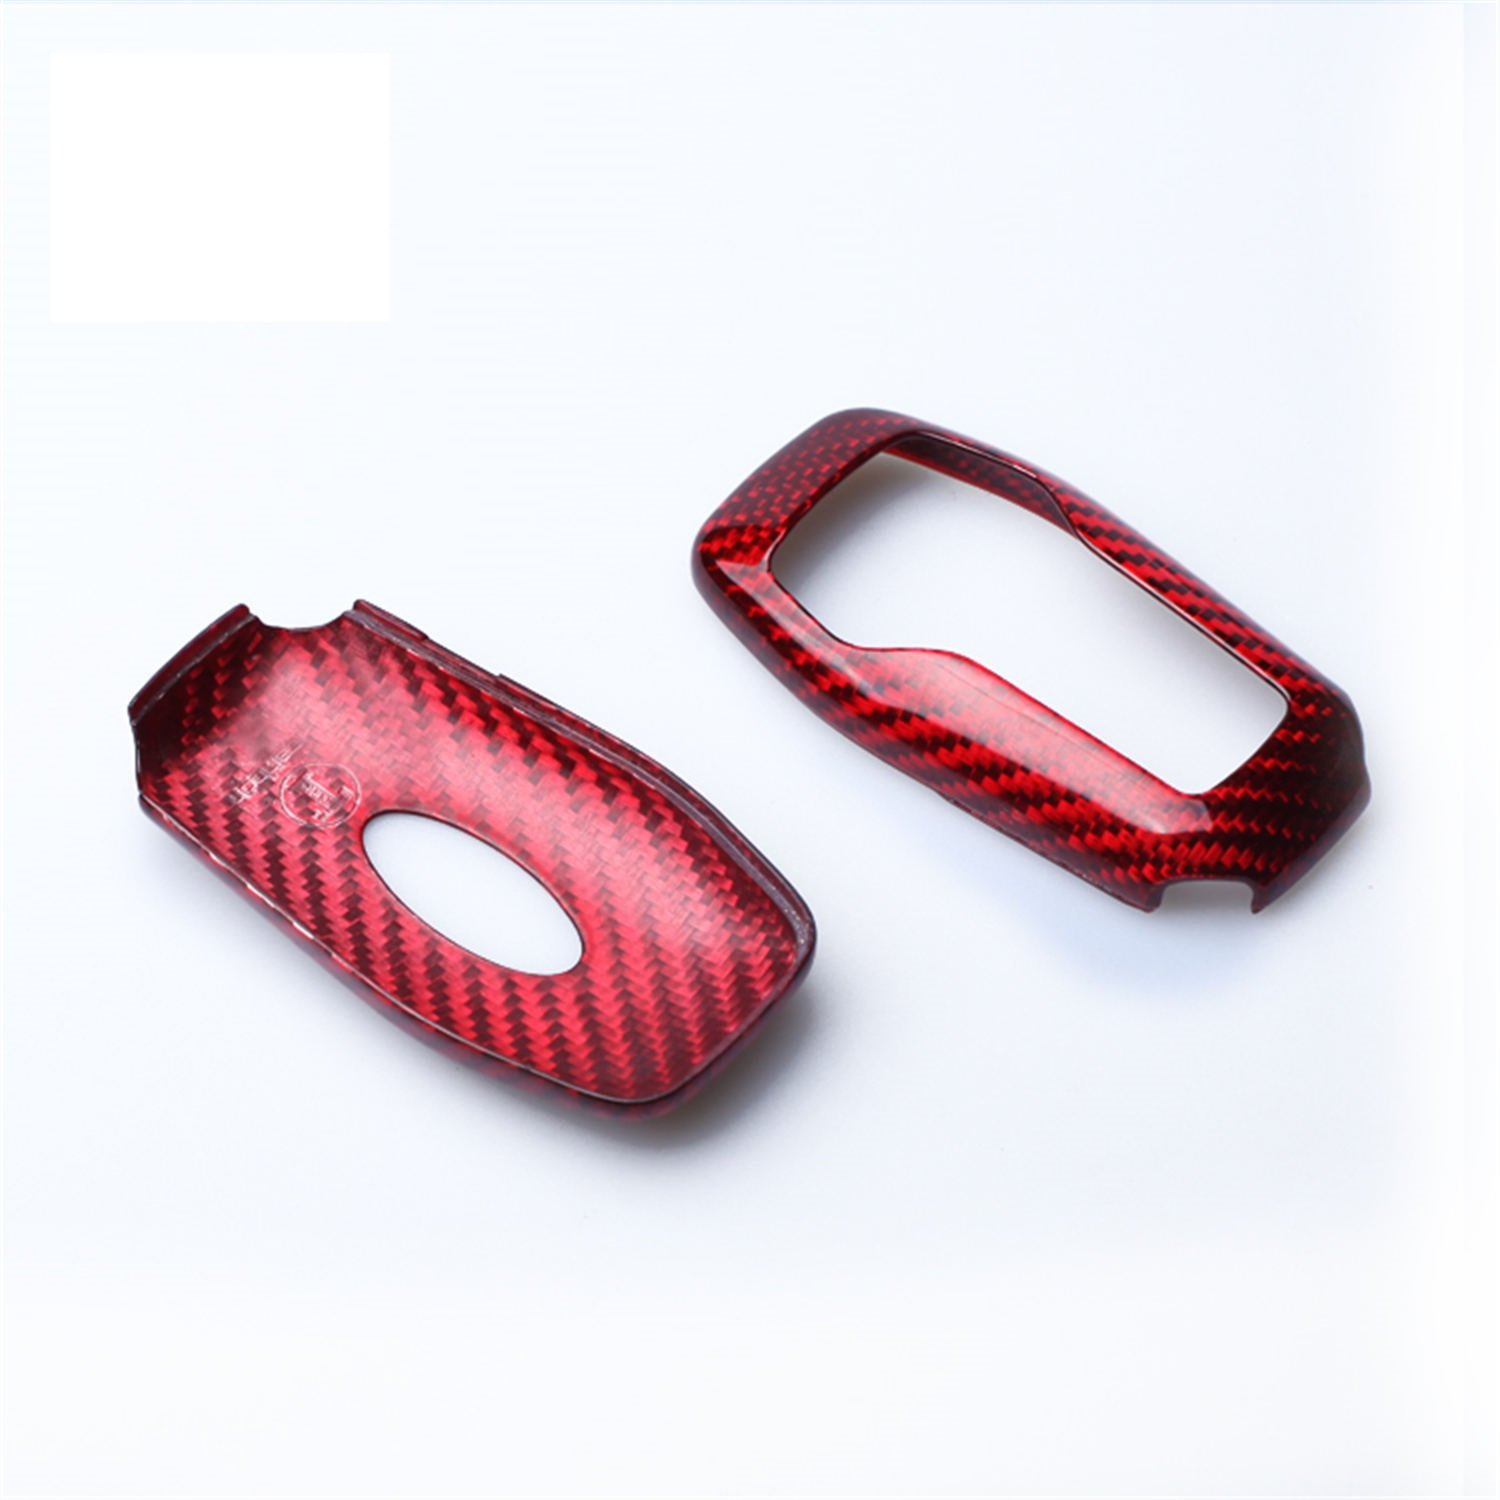 100/% Carbon Fiber Case For Ford Mustang Key Fob Mens Car Key Fob Case Womens Fob Cover Red Genuine Carbon Fiber Cover For Ford Mustang 5 Buttons Smart Keyless Fob Remote Key